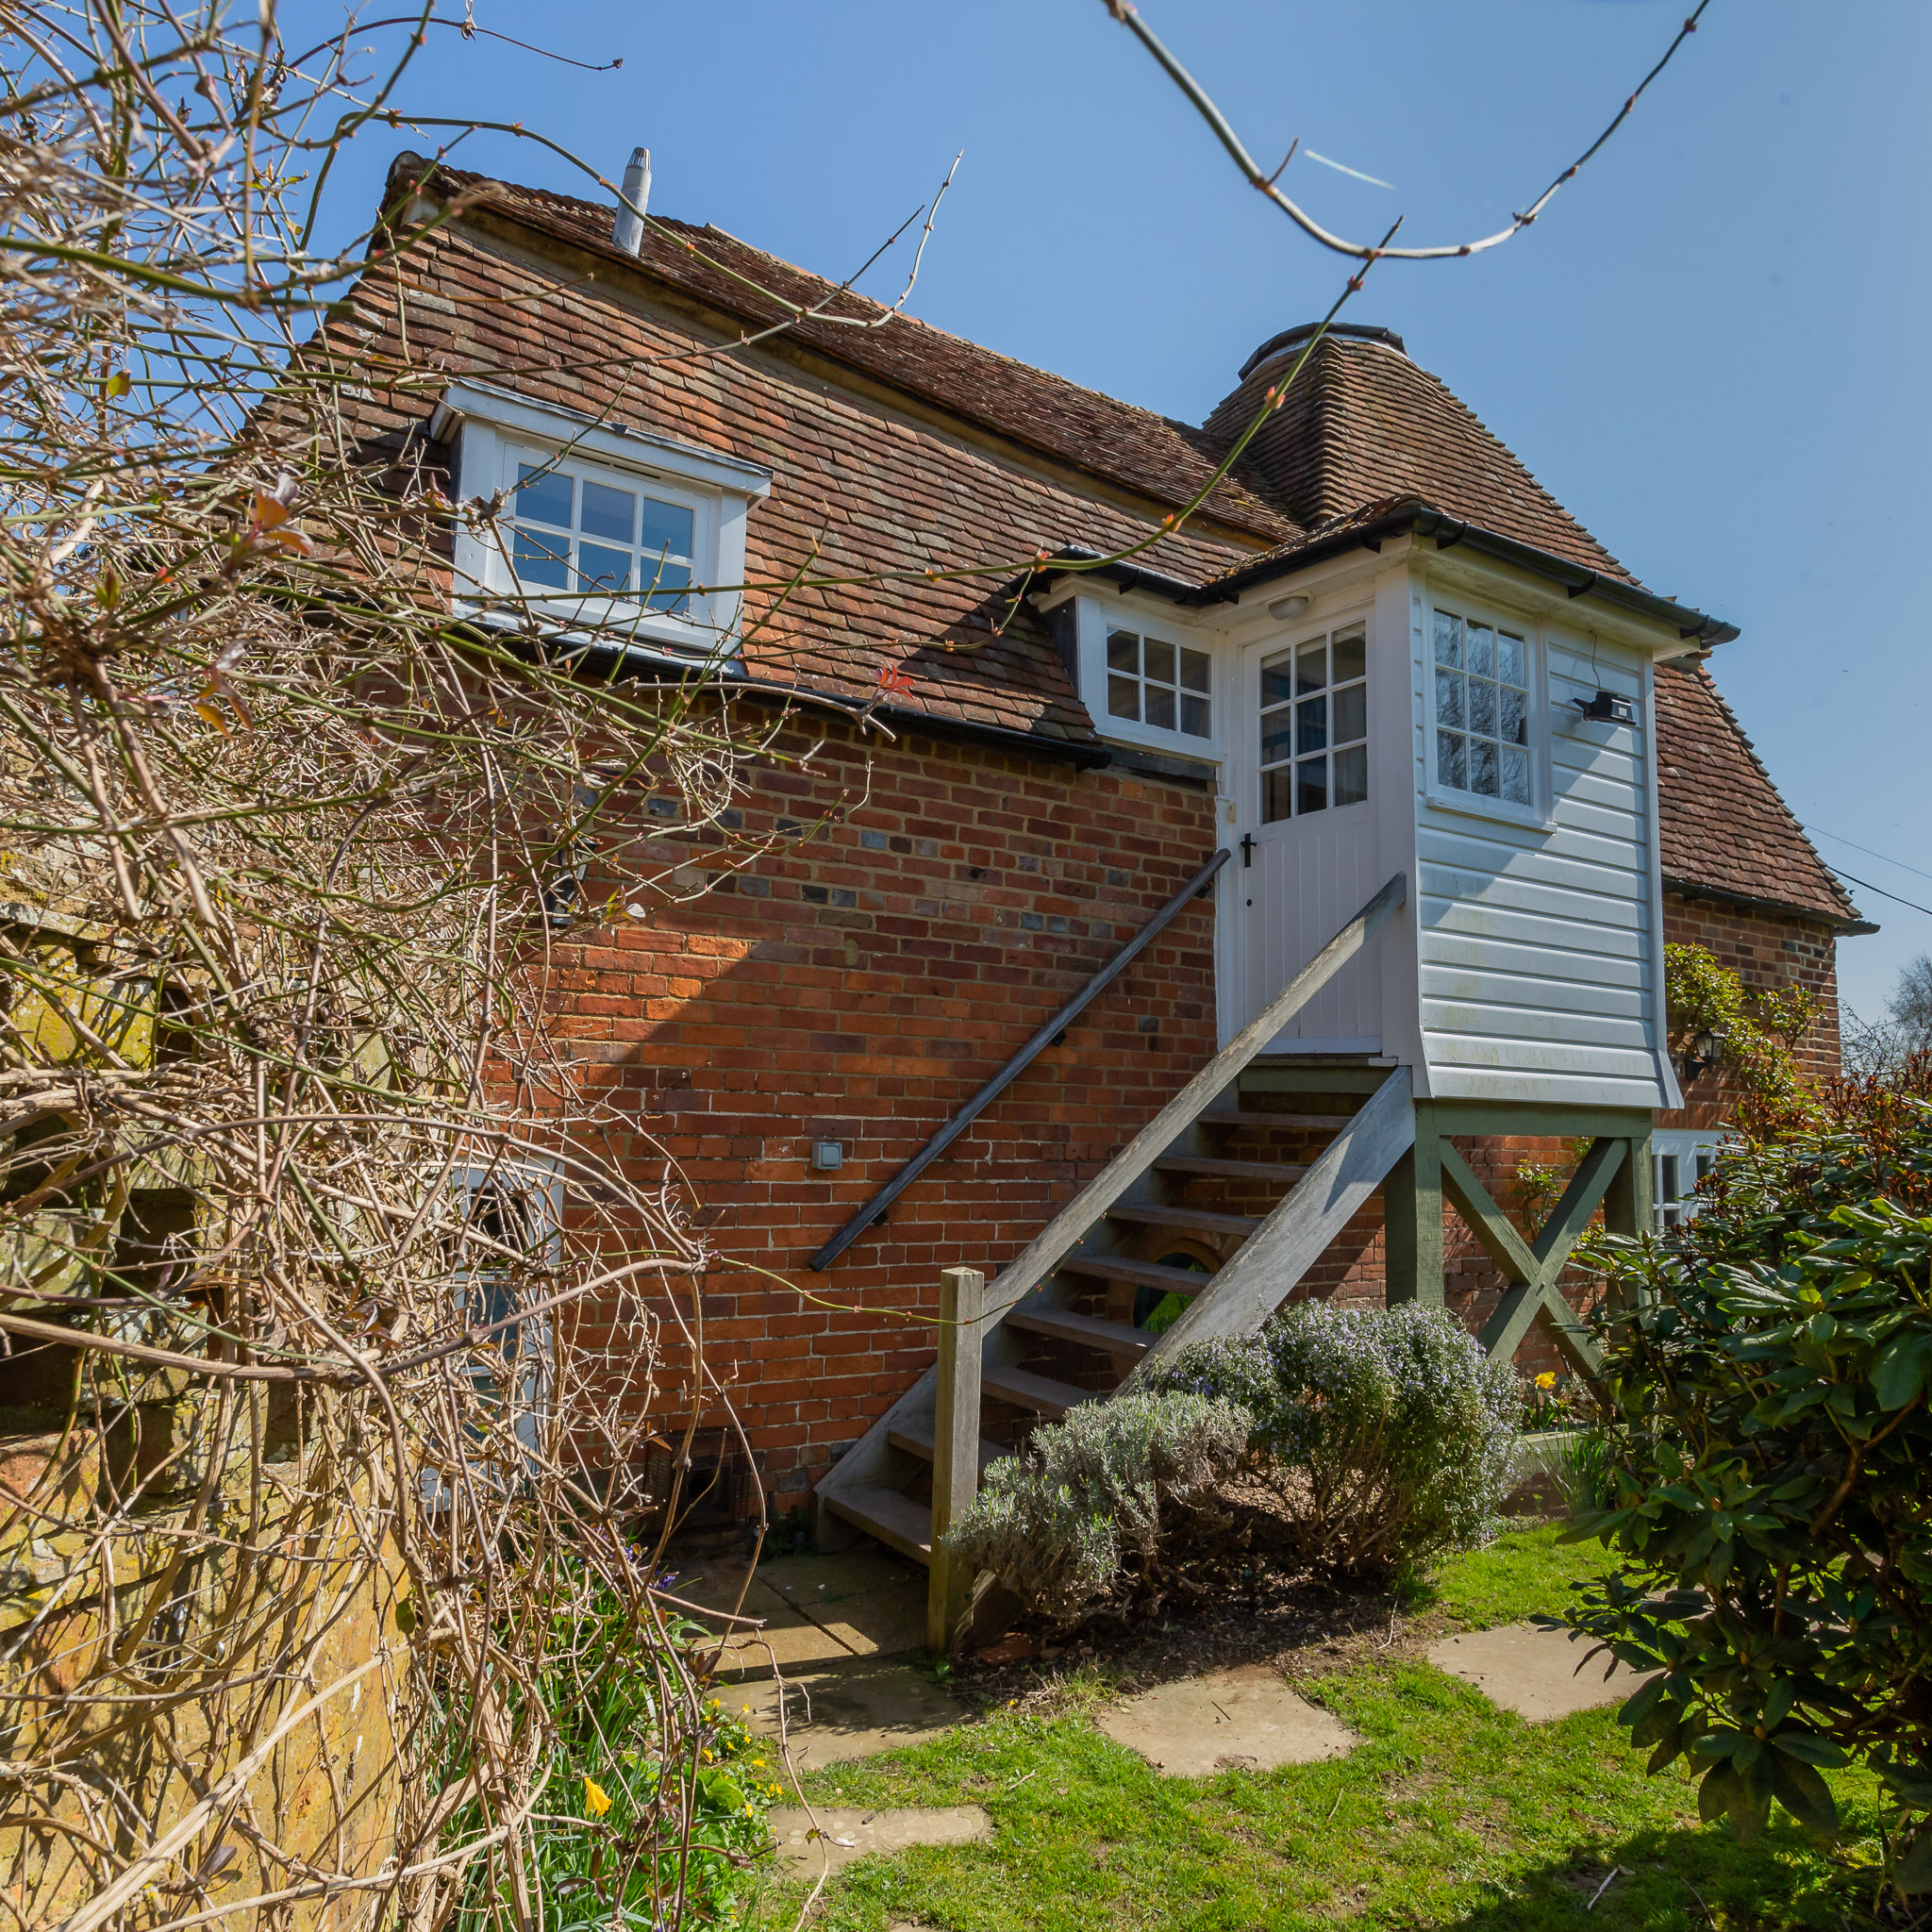 The oast is an upside down house, with the reception rooms upstairs and bedrooms downstairs